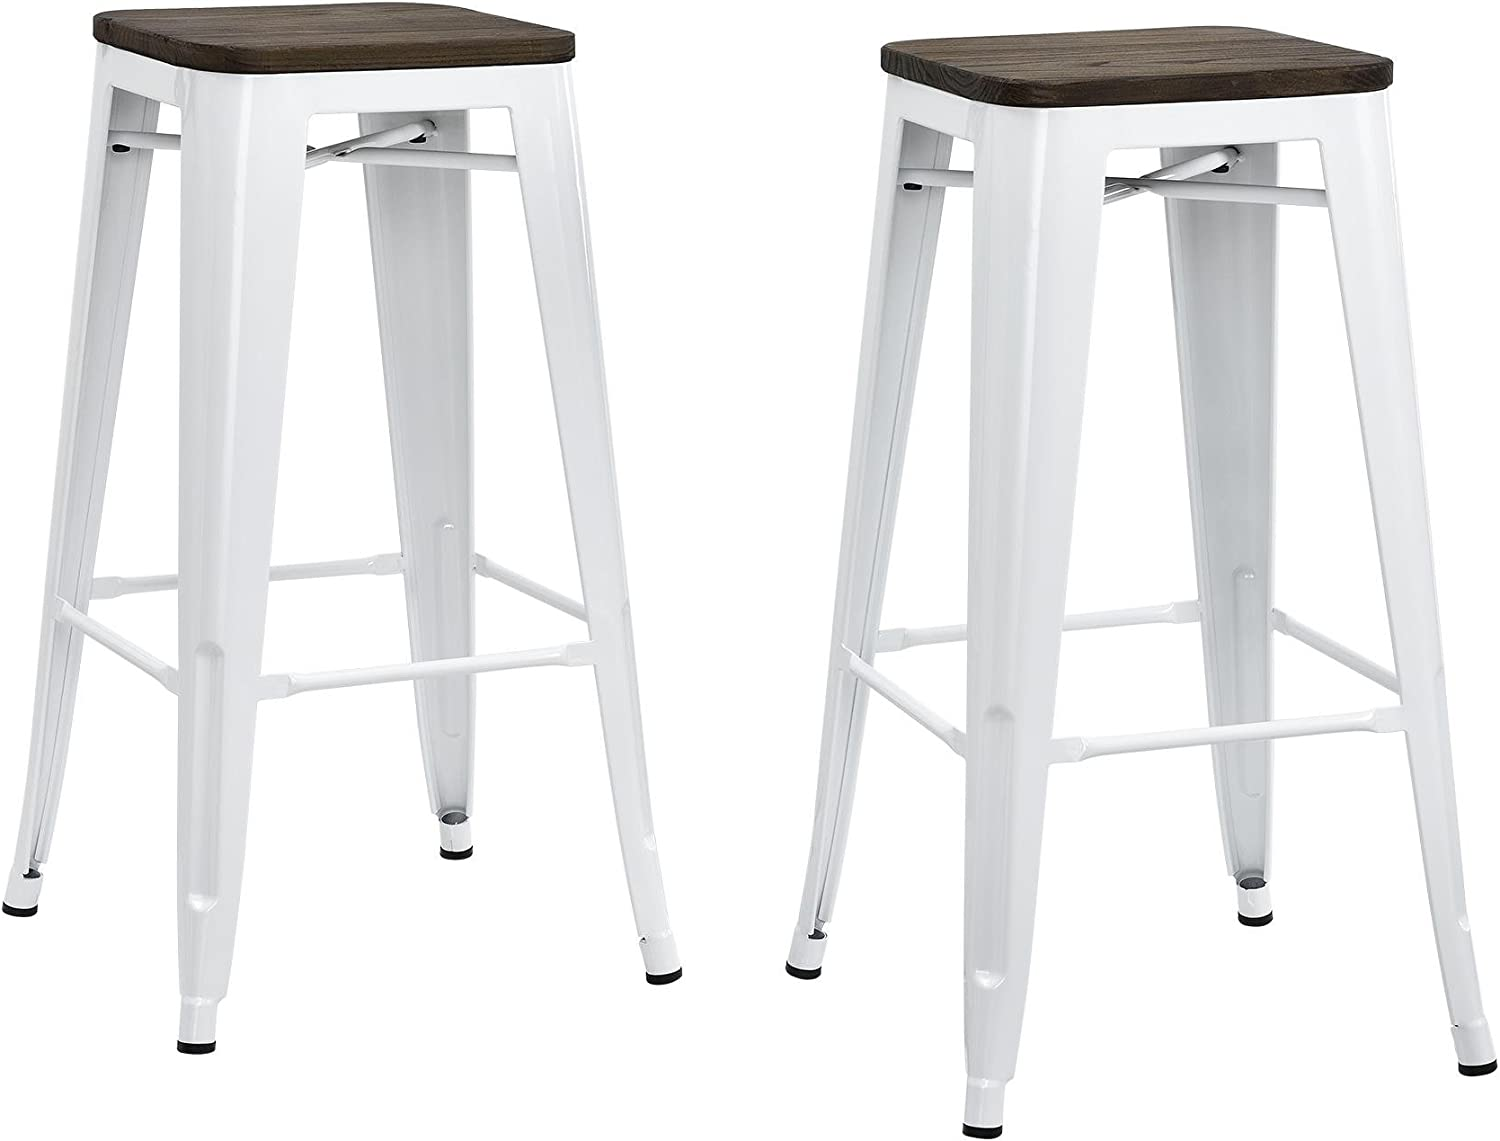 DHP Fusion Metal Backless 30  Bar Stool with Wood Seat, Distressed Metal Finish for Industrial Appeal, Set of two, White